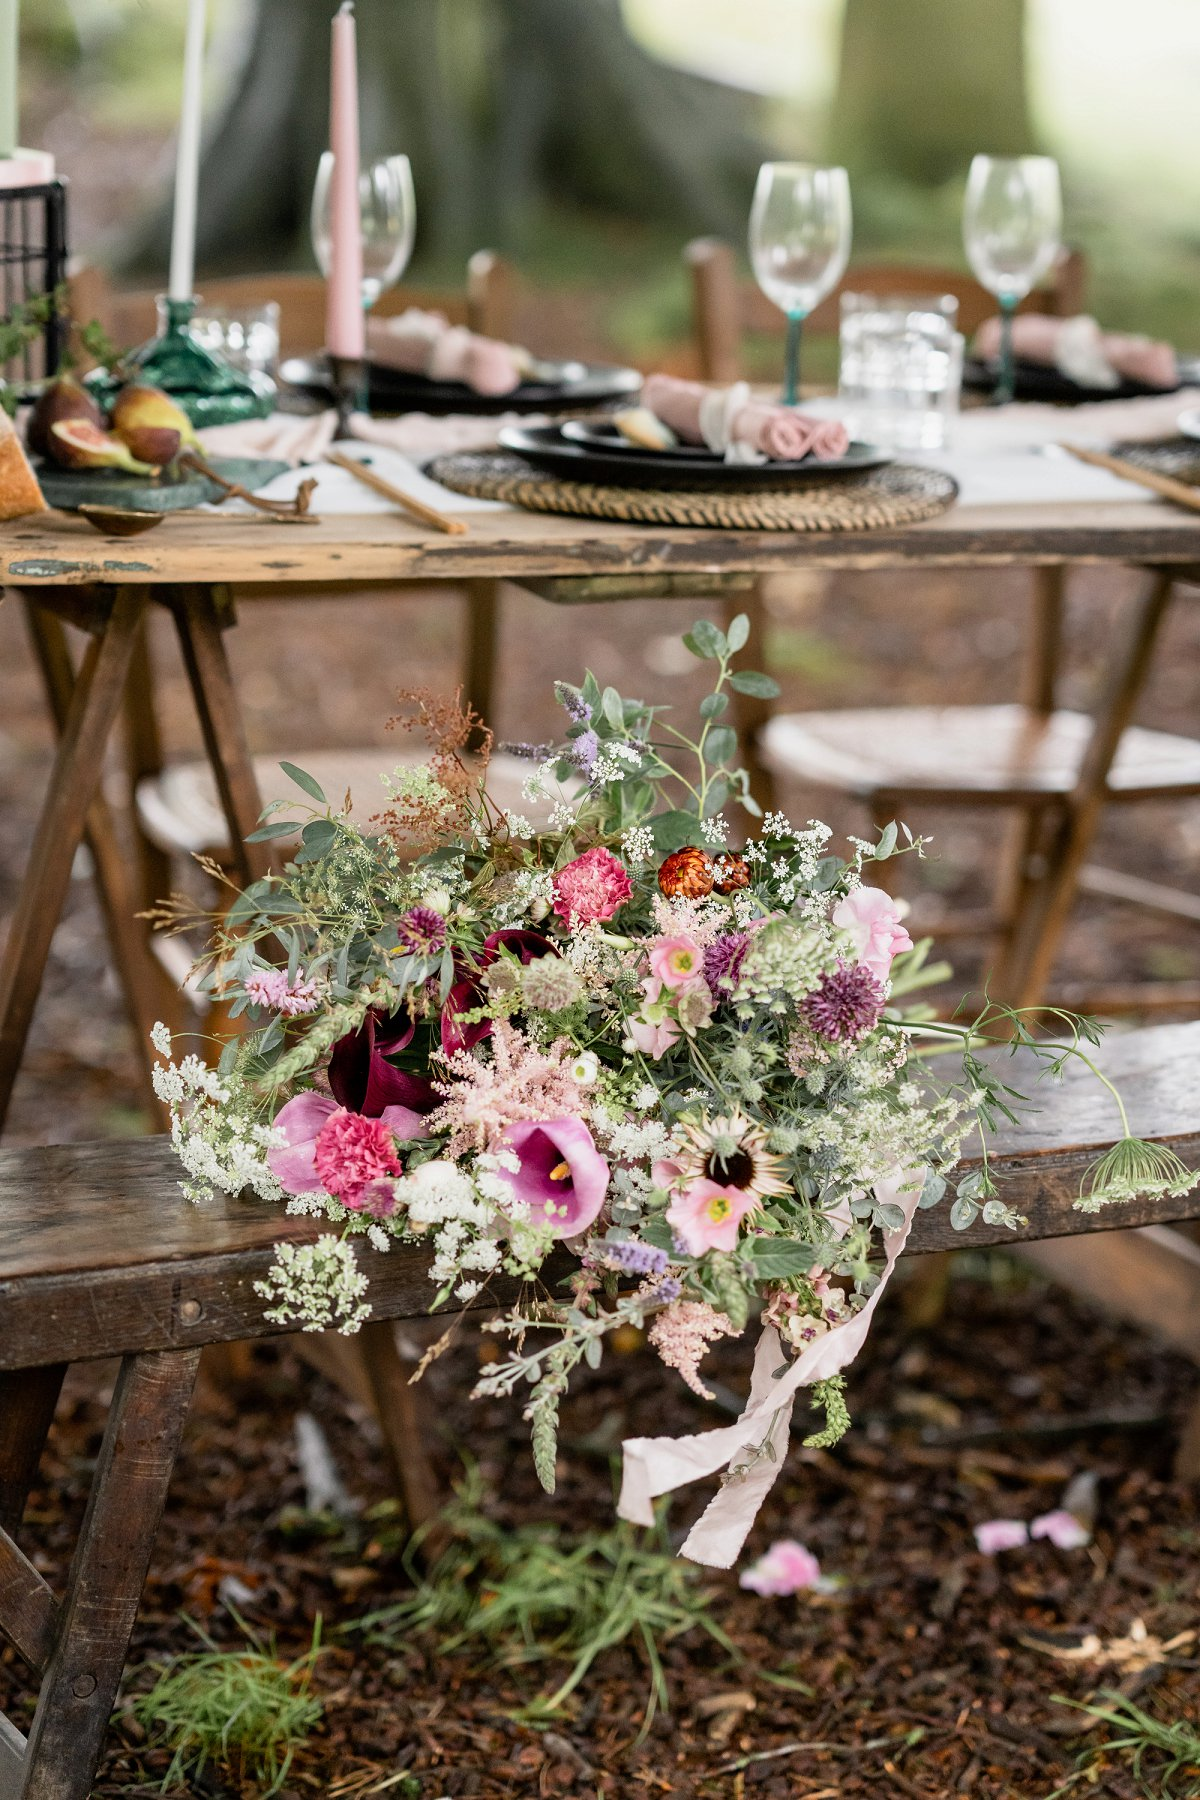 A Styled Woodland Wedding Shoot for Glorious By Heidi at Heaton House Farm (c) Charlotte Palazzo Photography (2)